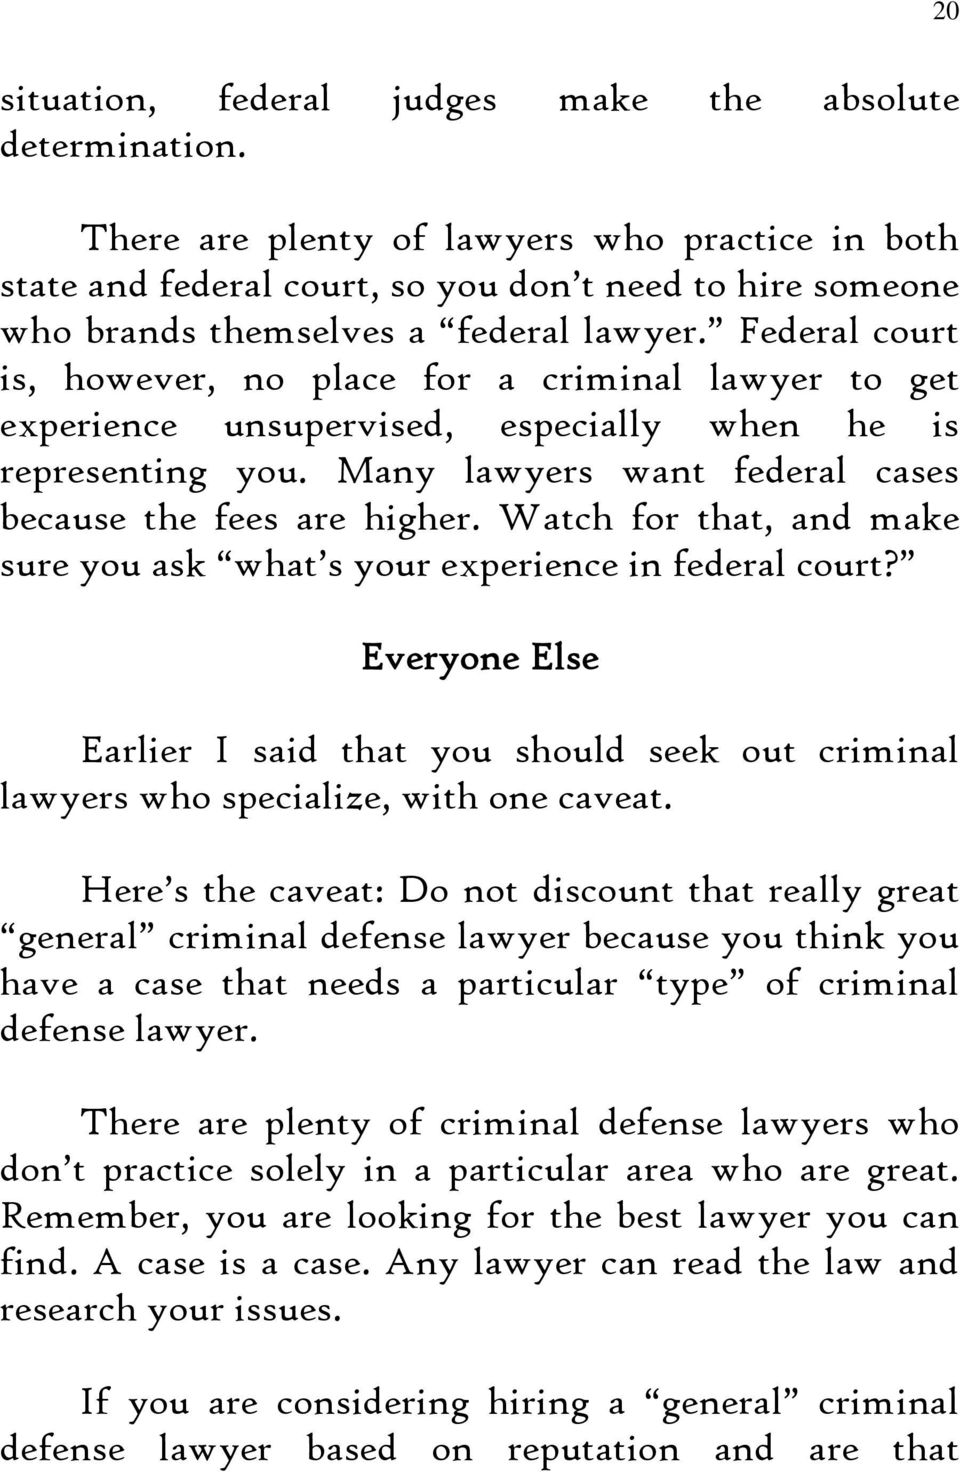 Federal court is, however, no place for a criminal lawyer to get experience unsupervised, especially when he is representing you. Many lawyers want federal cases because the fees are higher.